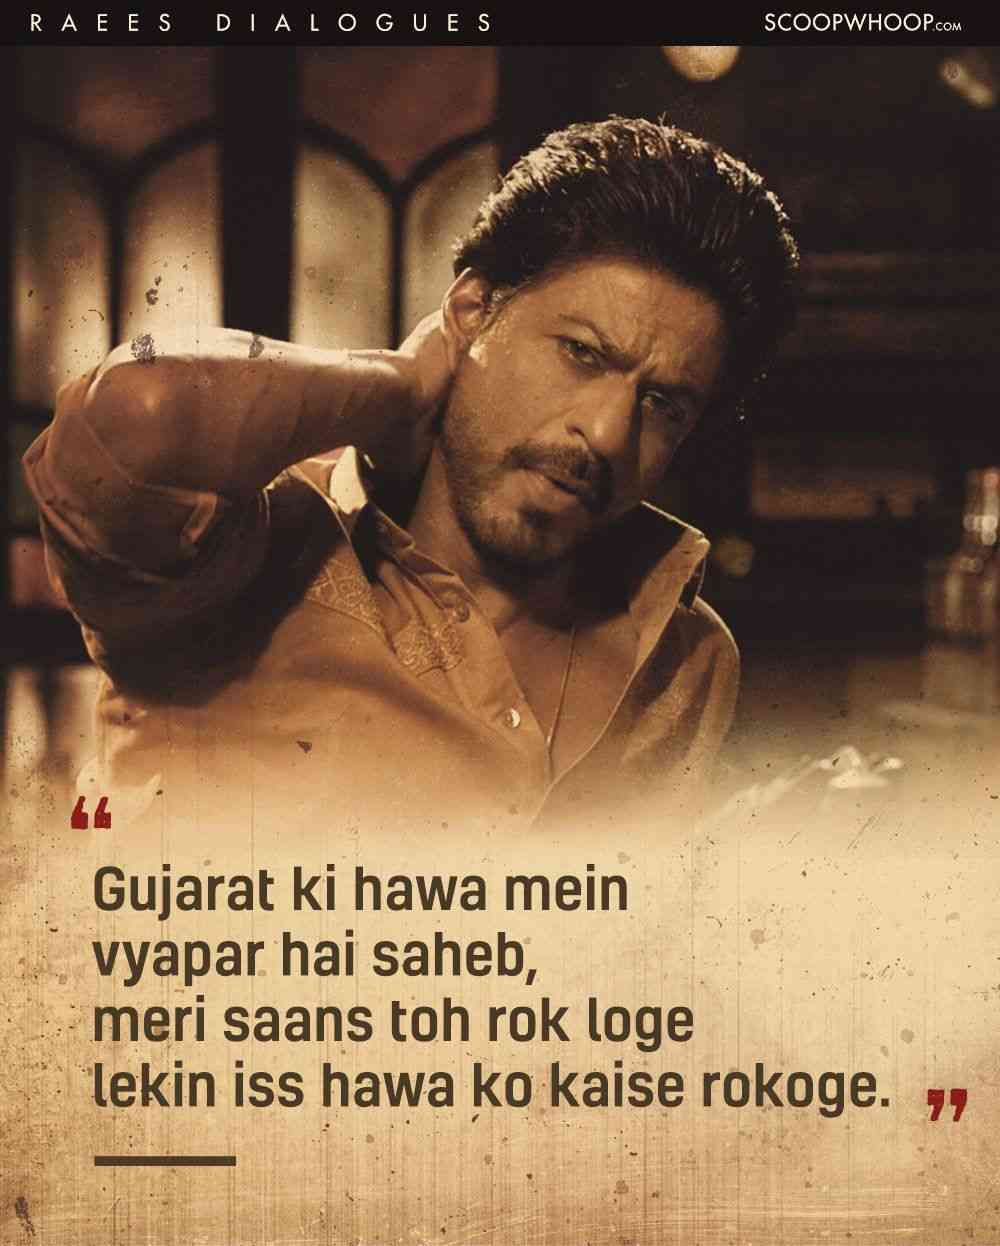 10 Best Dialogues From The Movie Raees